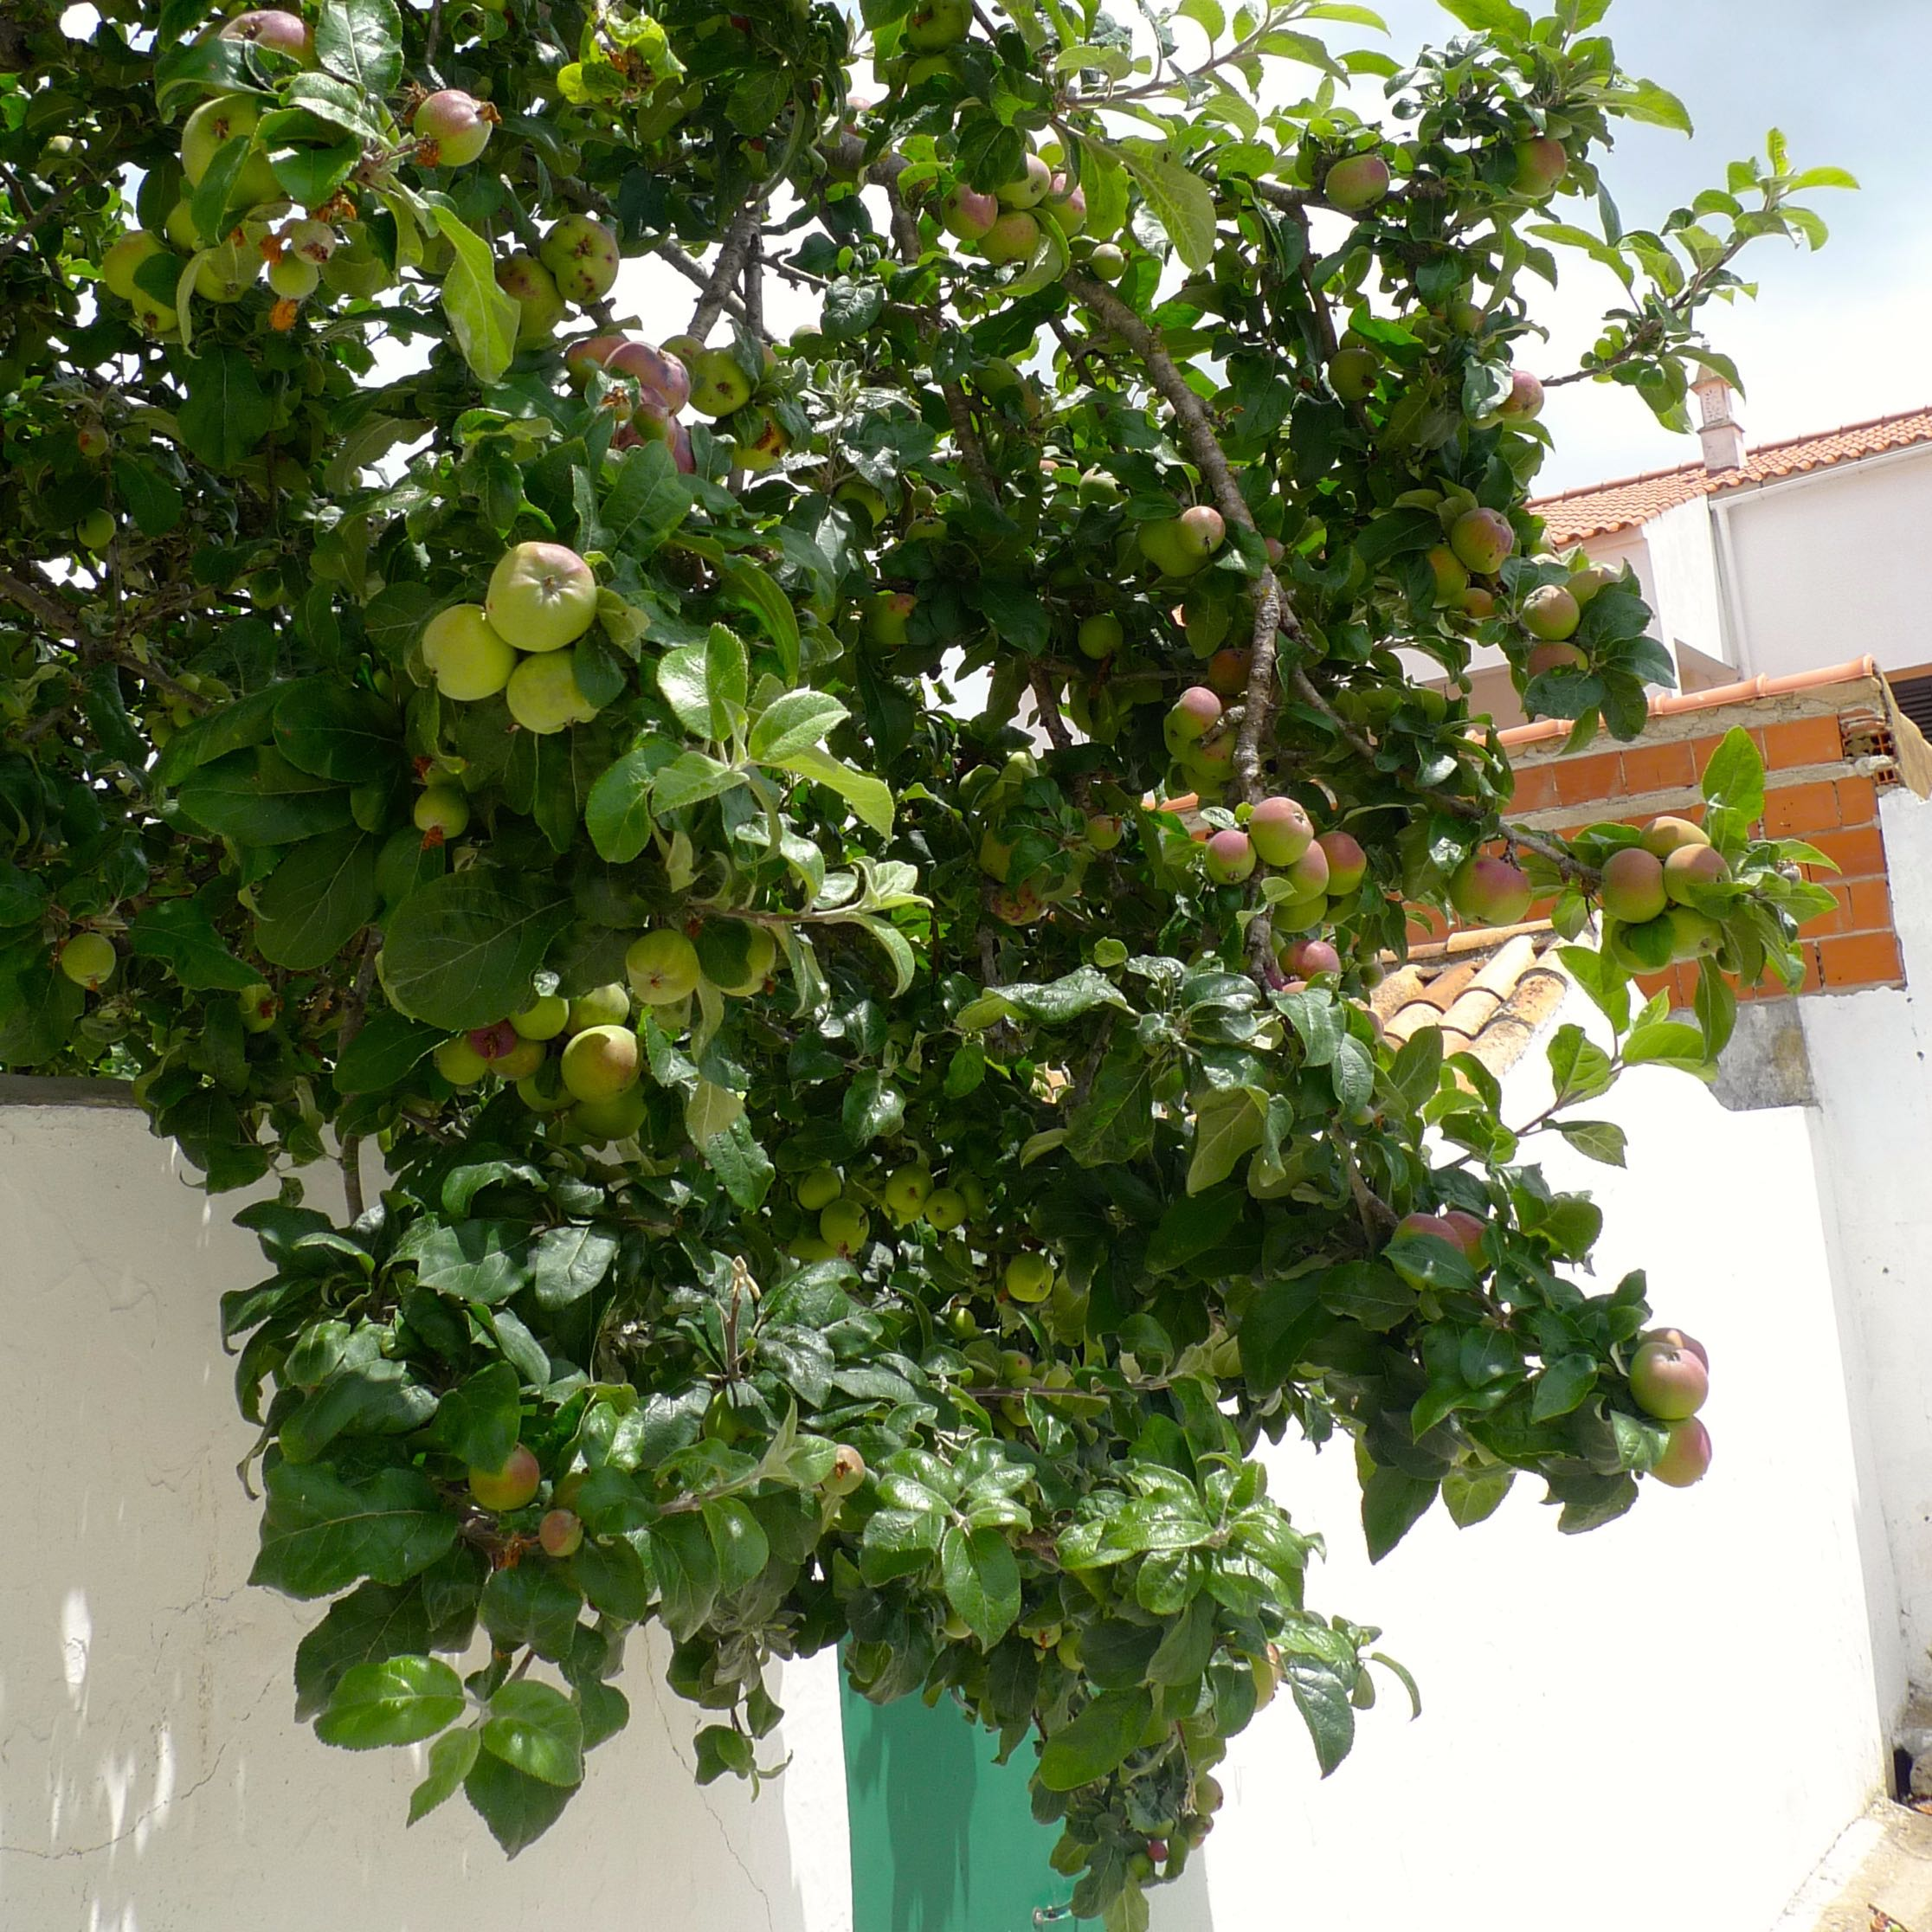 Fruit trees in the Alentejo